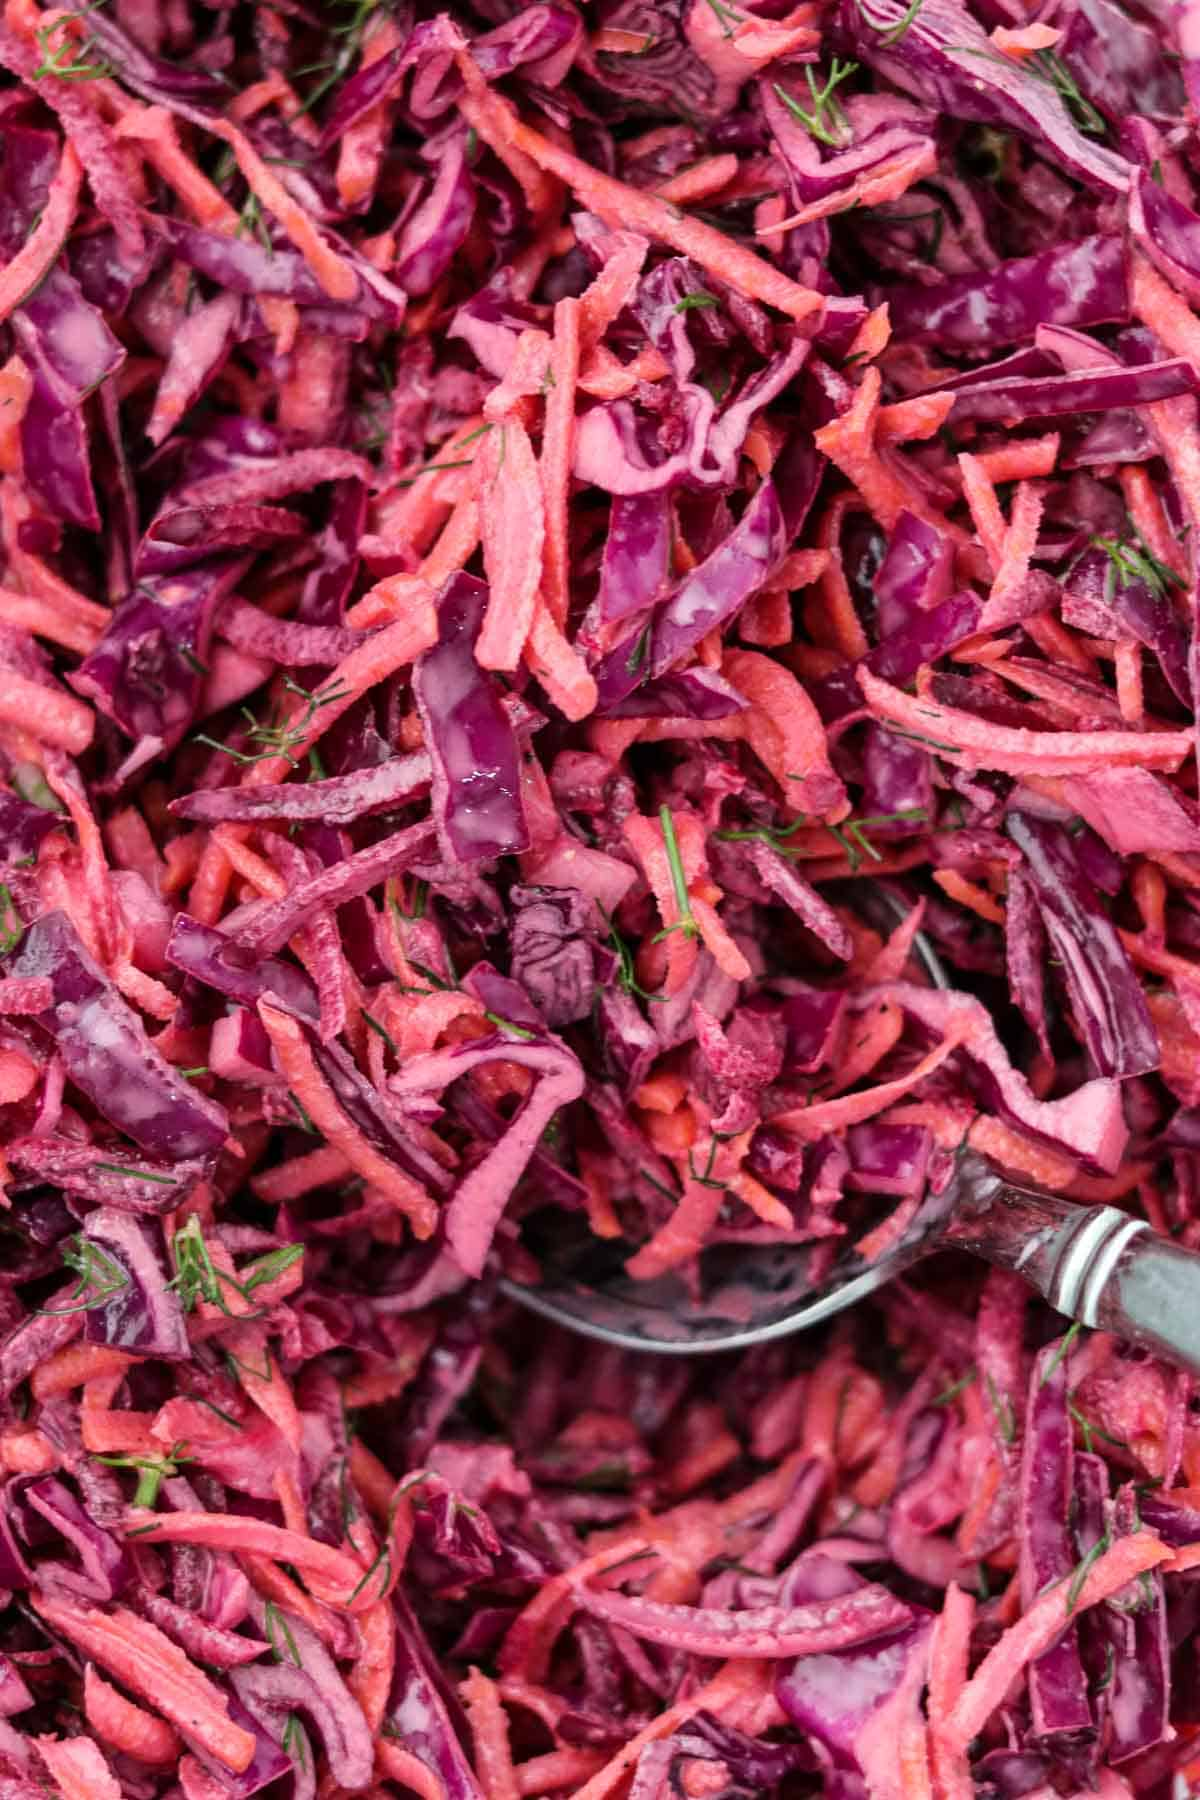 Close up of Red Cabbage Slaw and and a spoon.